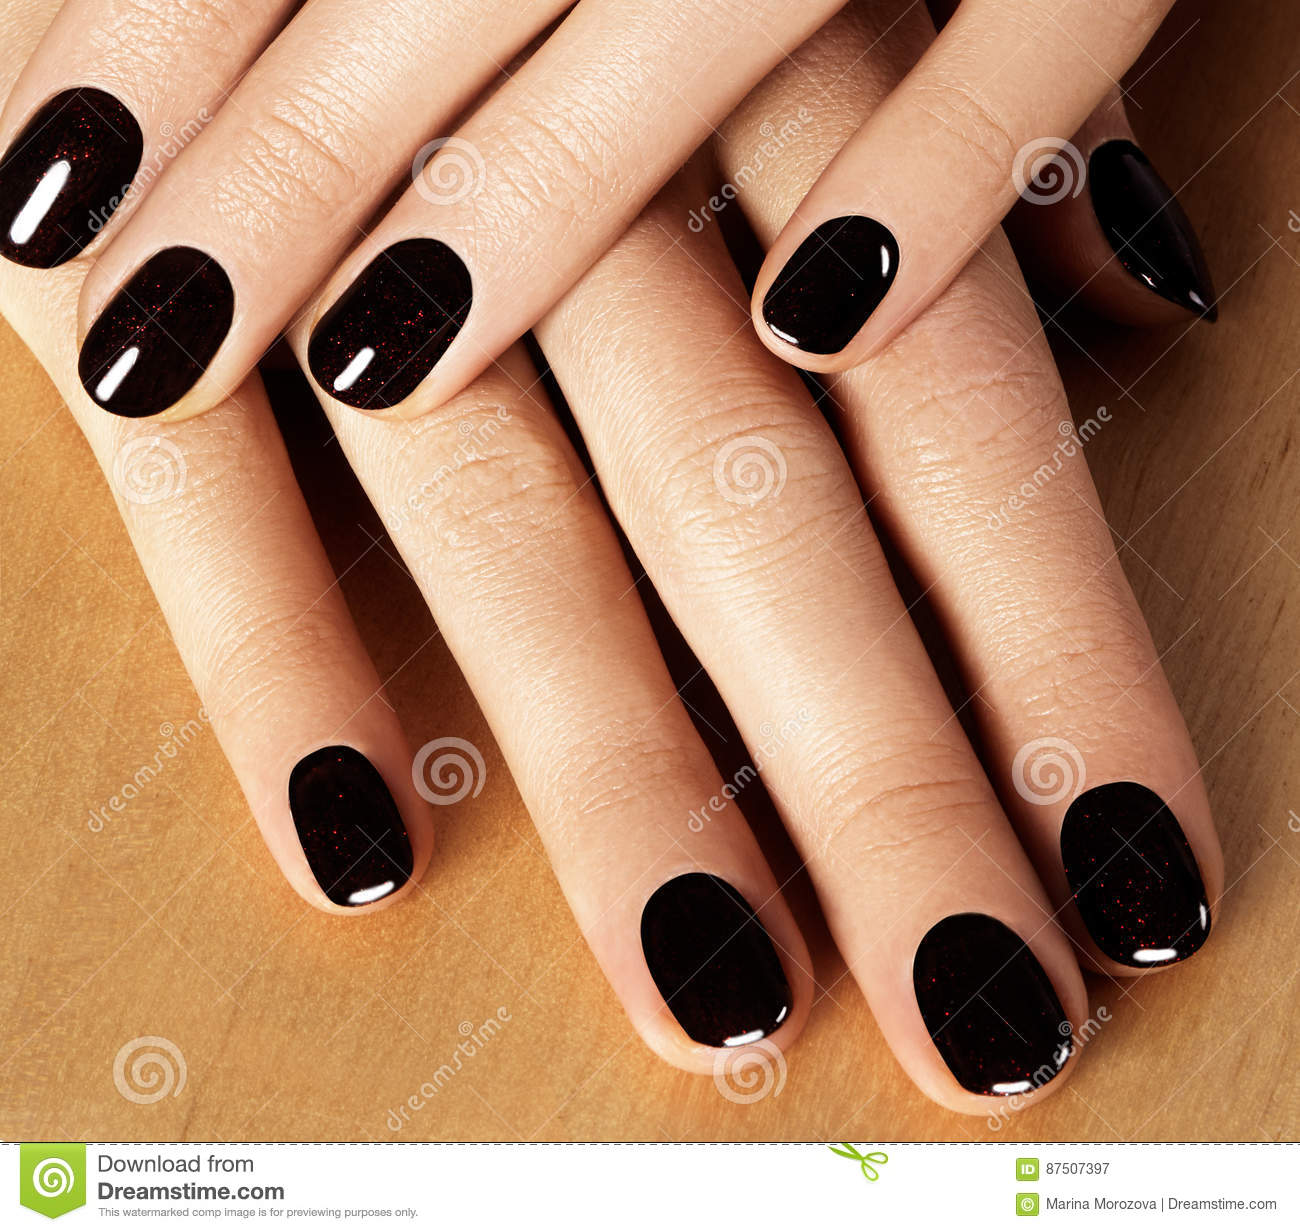 Manicured Nails With Black Nail Polish. Manicure With Dark ...